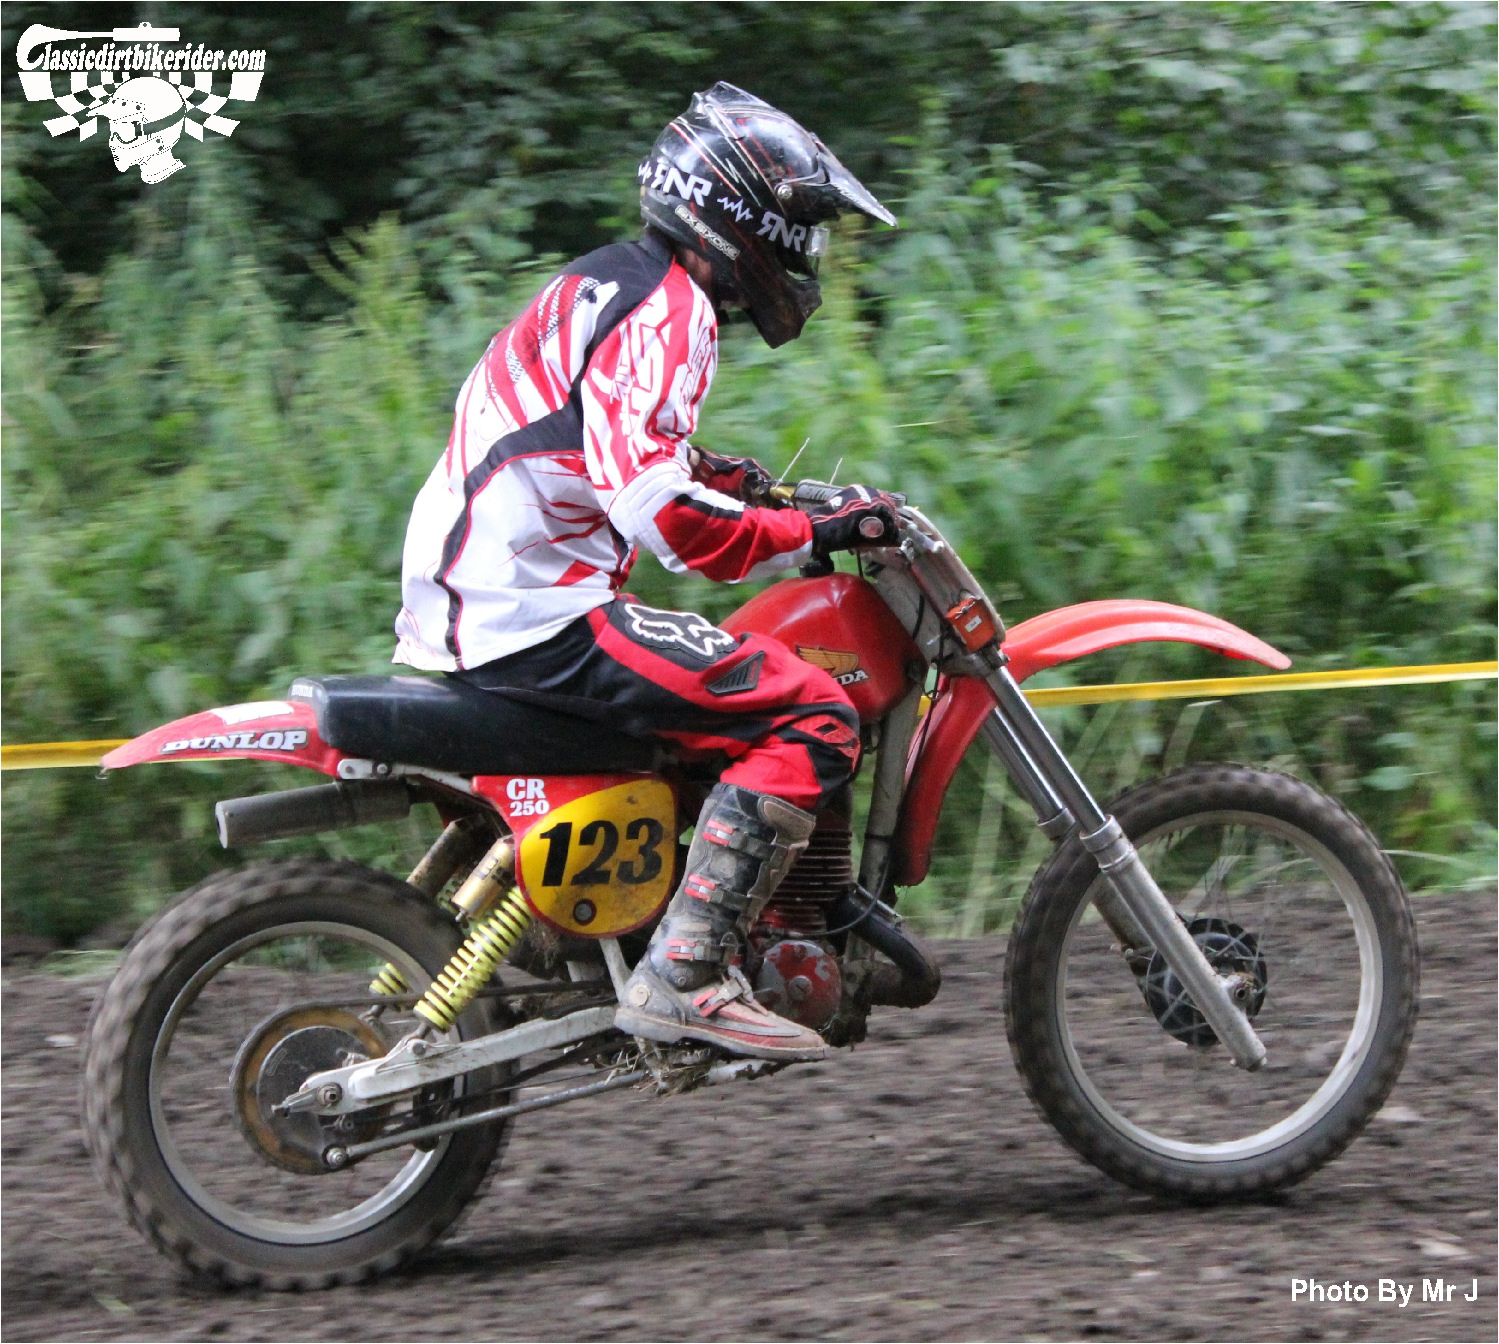 king of the castle 2015 photos Farleigh Castle twinshock motocross classicdirtbikerider.com 64